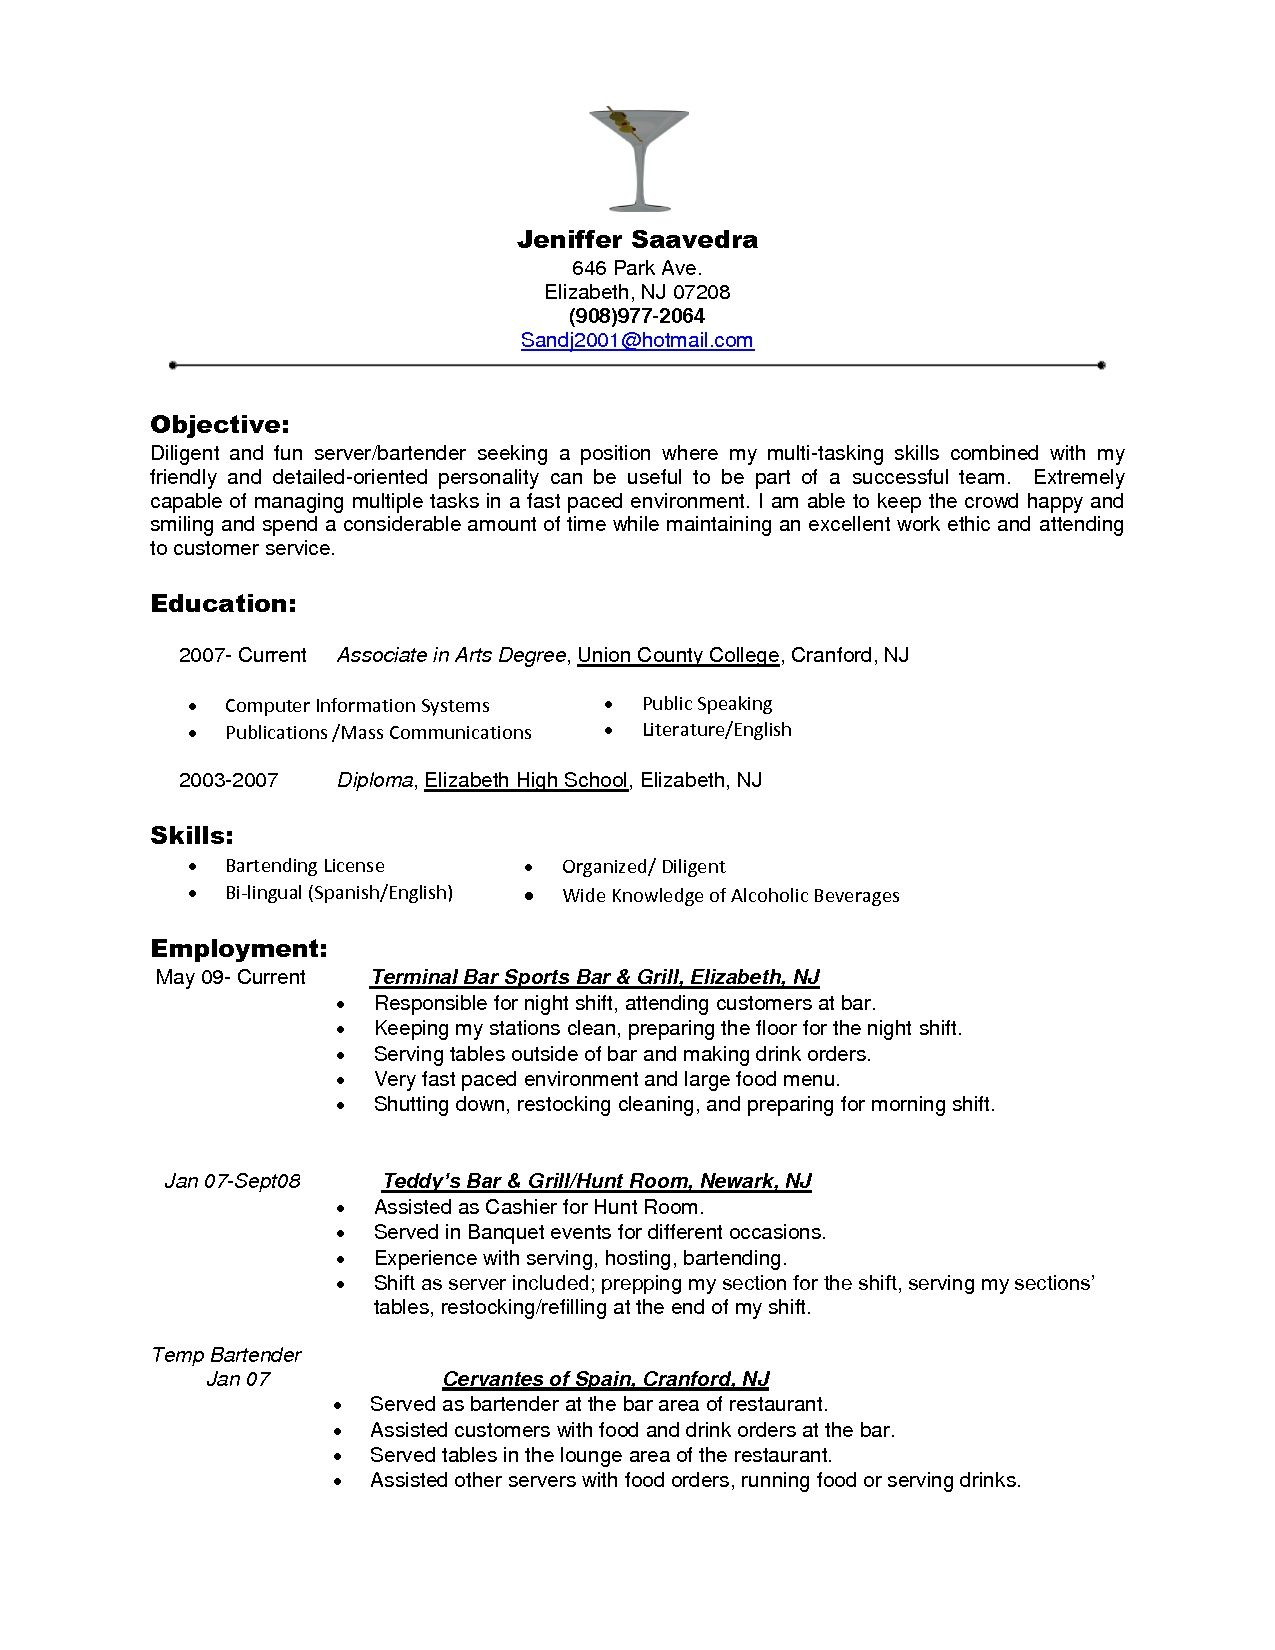 Objective For My Resume Ahoy – Objective for My Resume